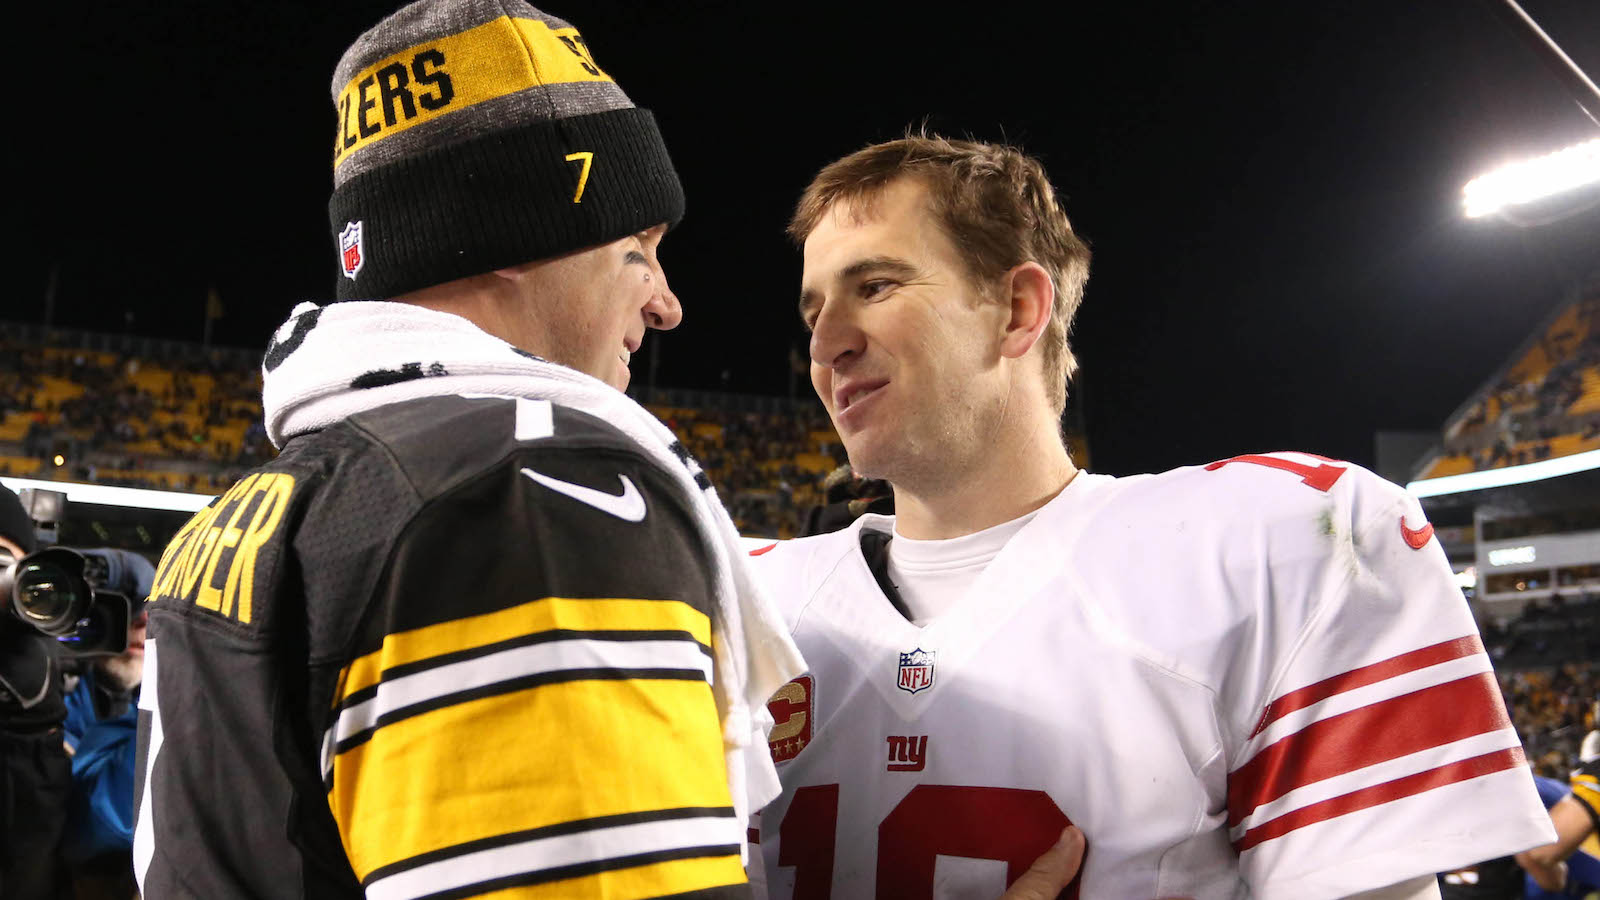 Dec 4, 2016; Pittsburgh, PA, USA;  Pittsburgh Steelers quarterback Ben Roethlisberger (7) and New York Giants quarterback Eli Manning (10) meet after their game at Heinz Field. The Steelers won 24-14. Mandatory Credit: Charles LeClaire-USA TODAY Sports